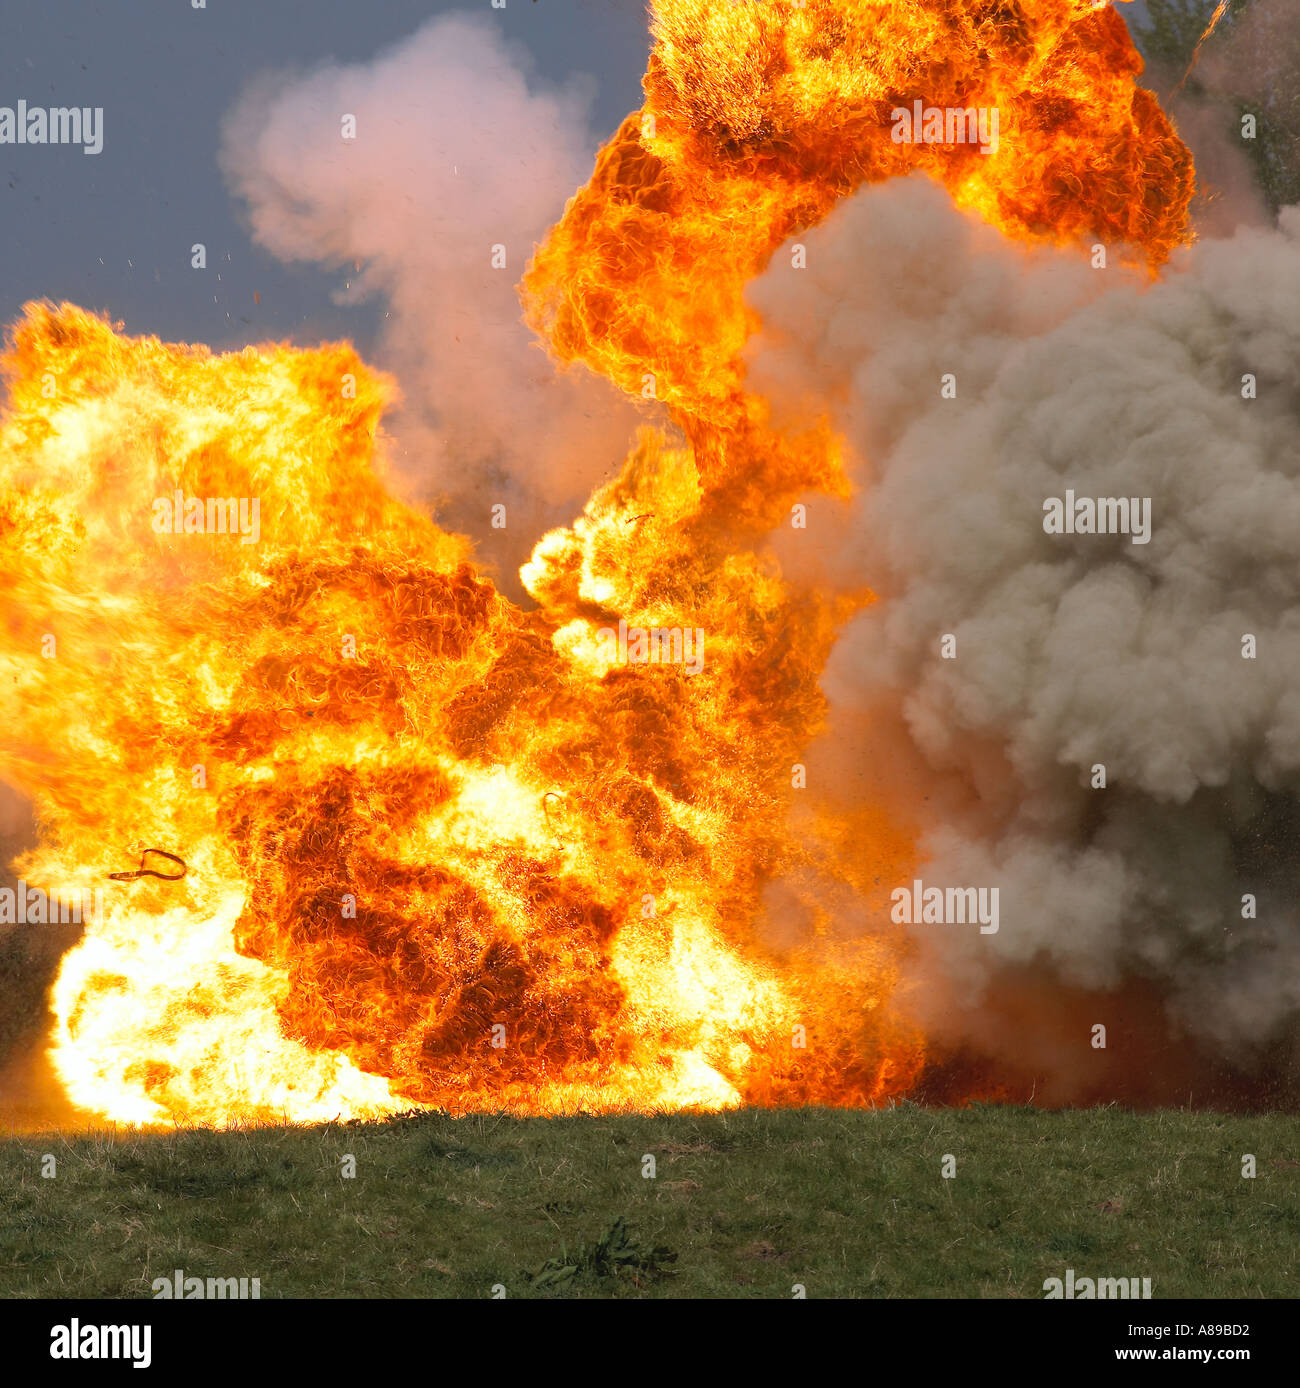 Car explosion - Stock Image